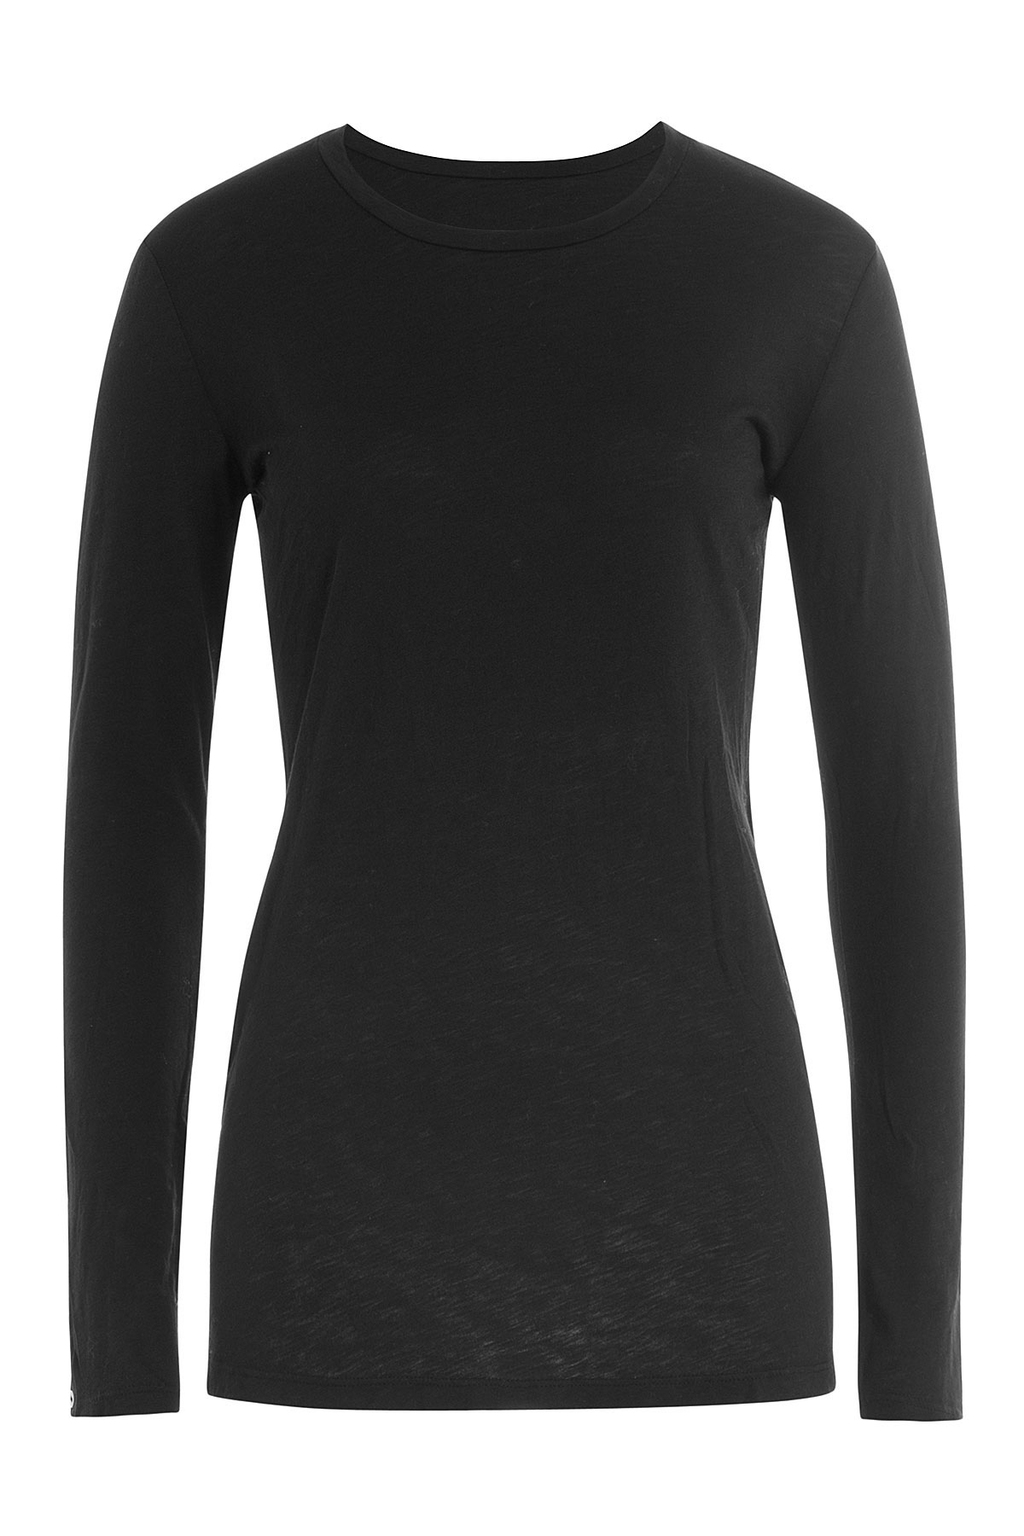 Long Sleeved Cotton Top Black - neckline: round neck; pattern: plain; length: below the bottom; predominant colour: black; occasions: casual, work, creative work; style: top; fibres: cotton - 100%; fit: tight; sleeve length: long sleeve; sleeve style: standard; pattern type: fabric; texture group: jersey - stretchy/drapey; wardrobe: basic; season: a/w 2016